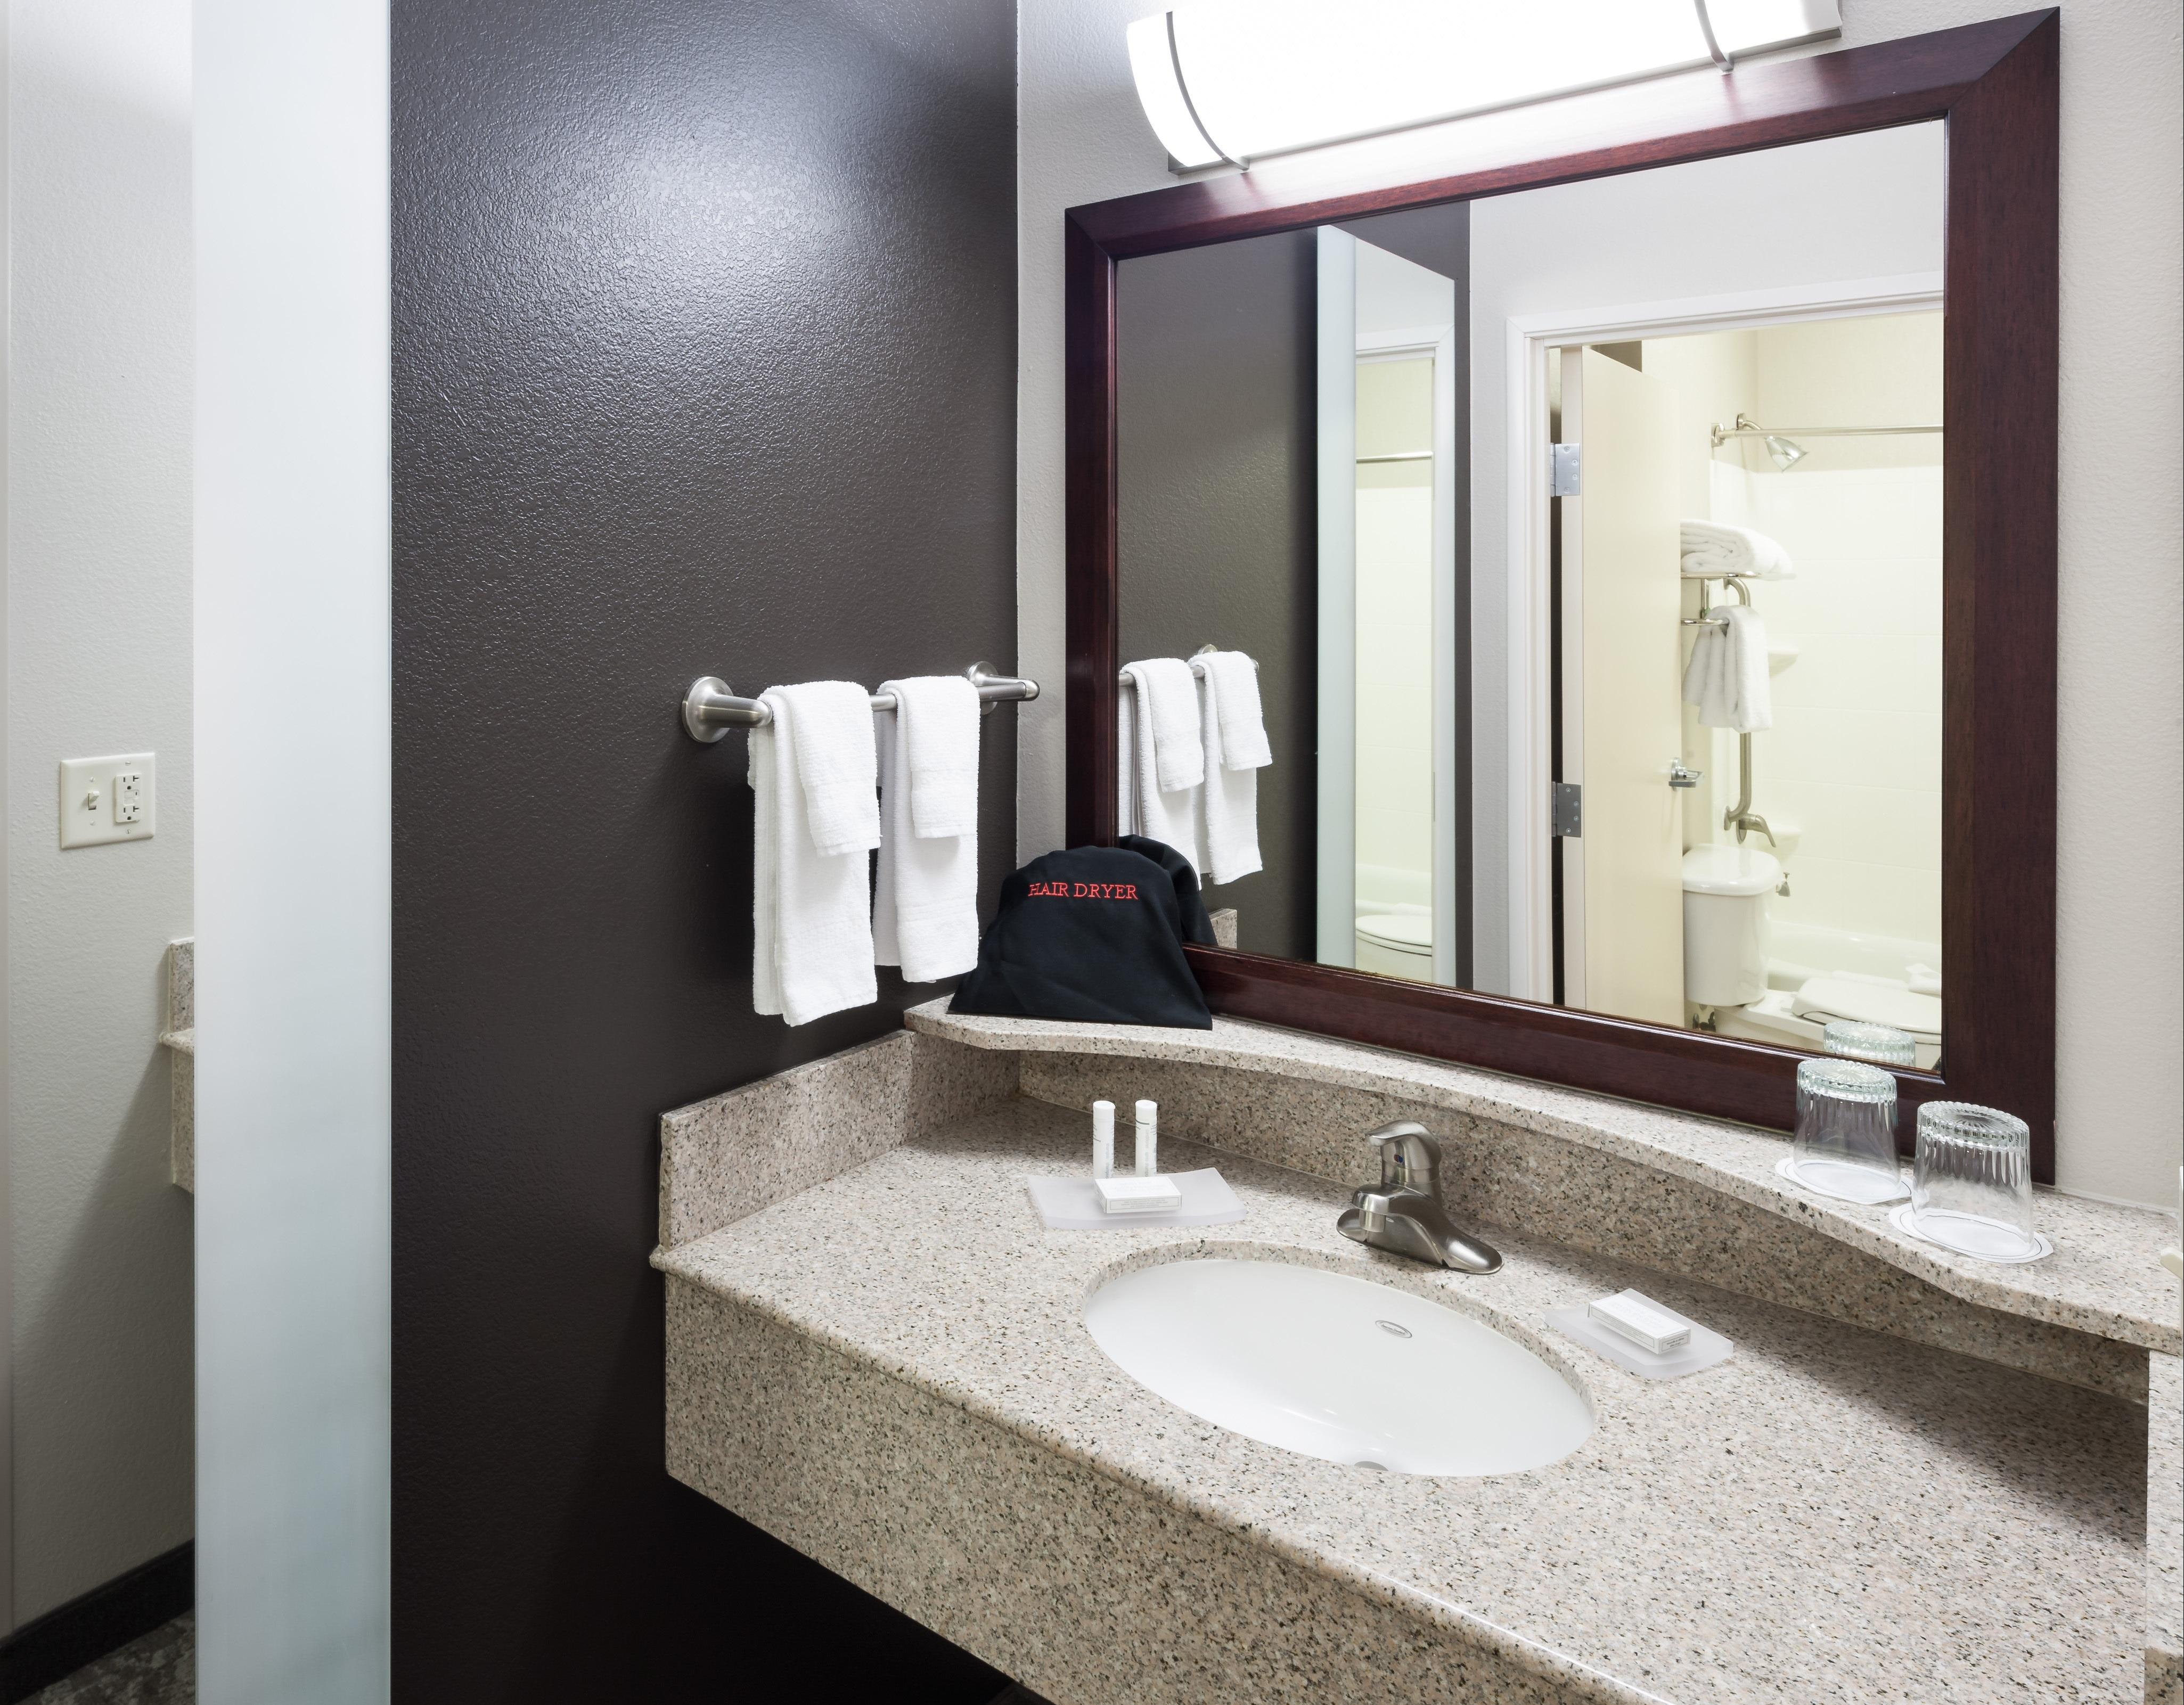 Springhill suites portland vancouver in vancouver wa for Bathrooms r us vancouver